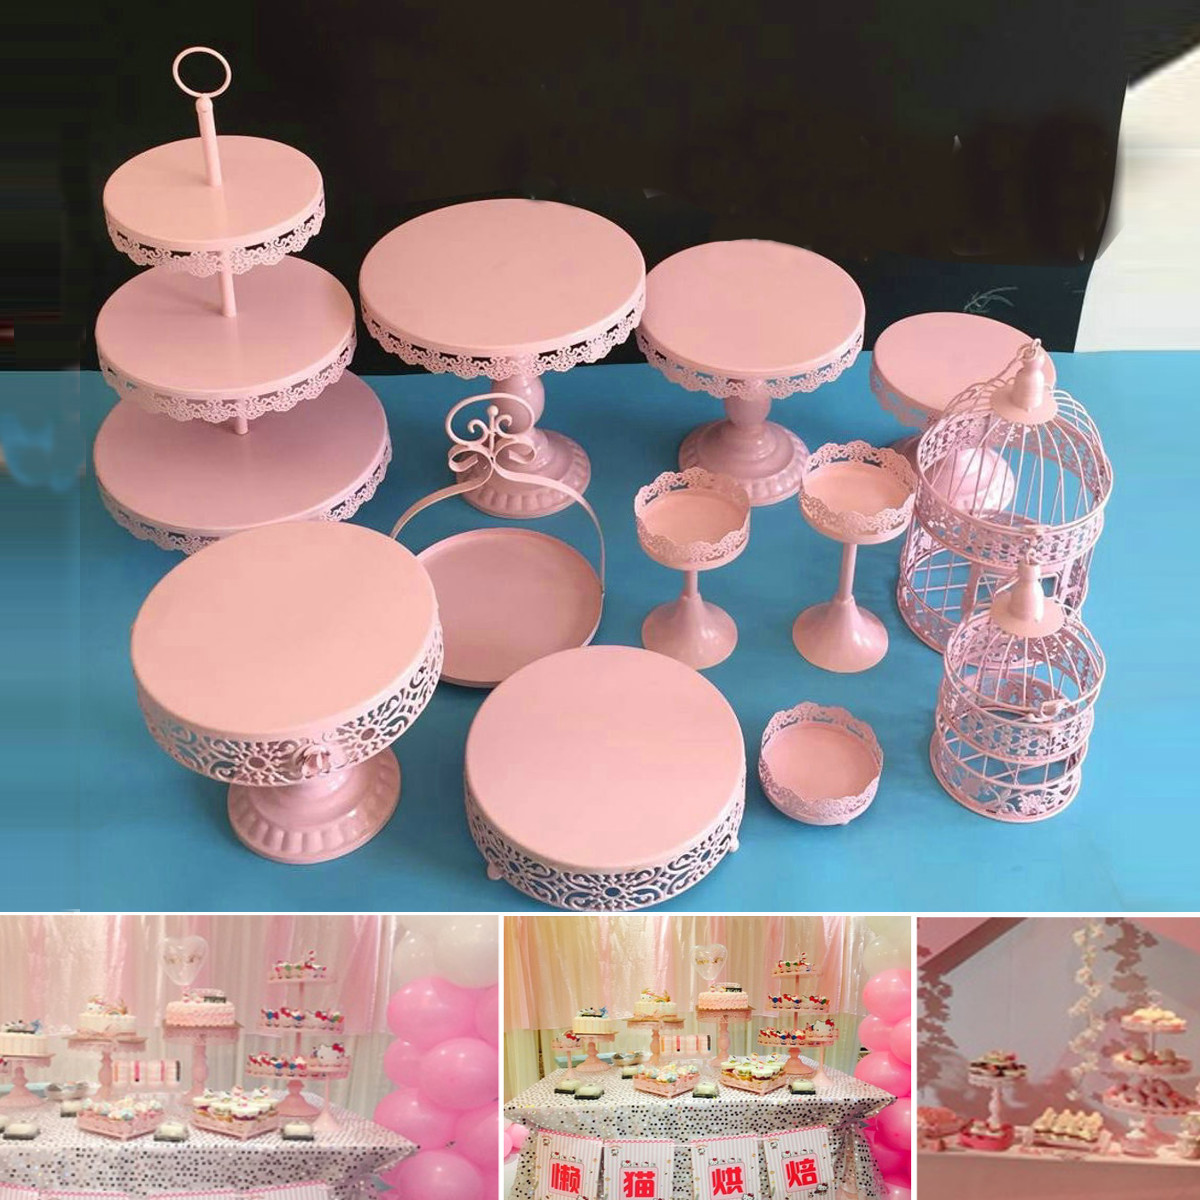 Metal Crystal Cake Stands Holder Cupcakes Dessert Display Serving ...